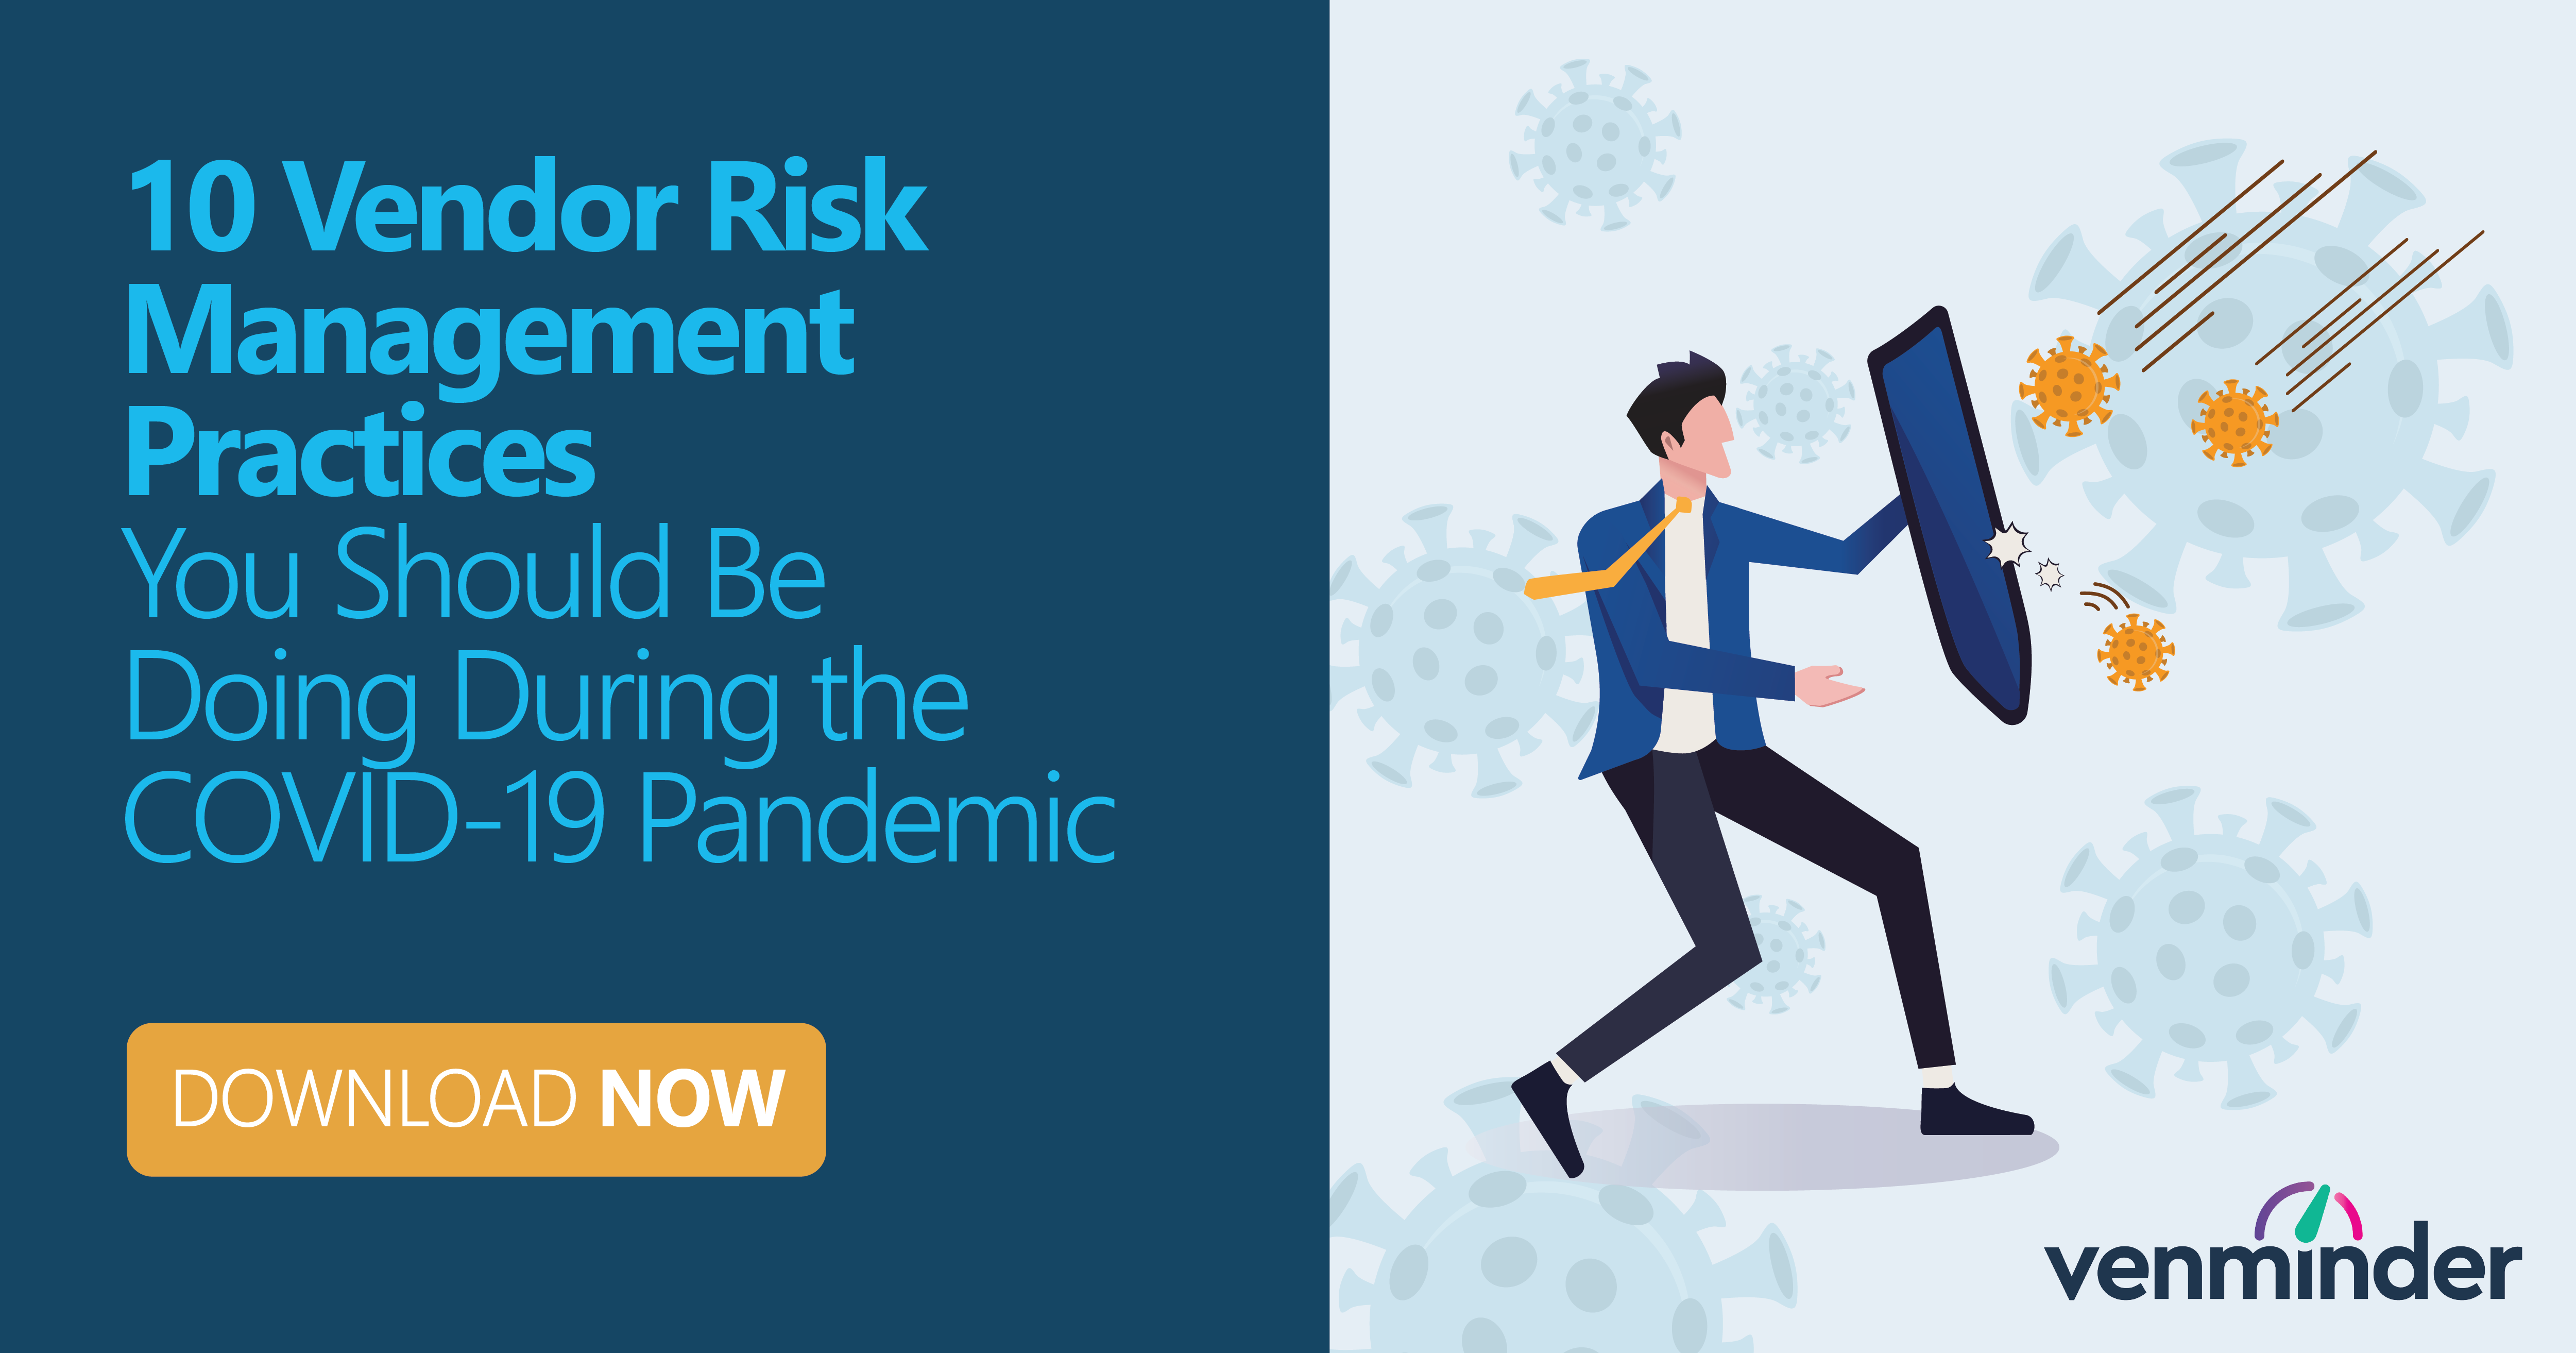 vendor risk management practices covid-19 pandemic